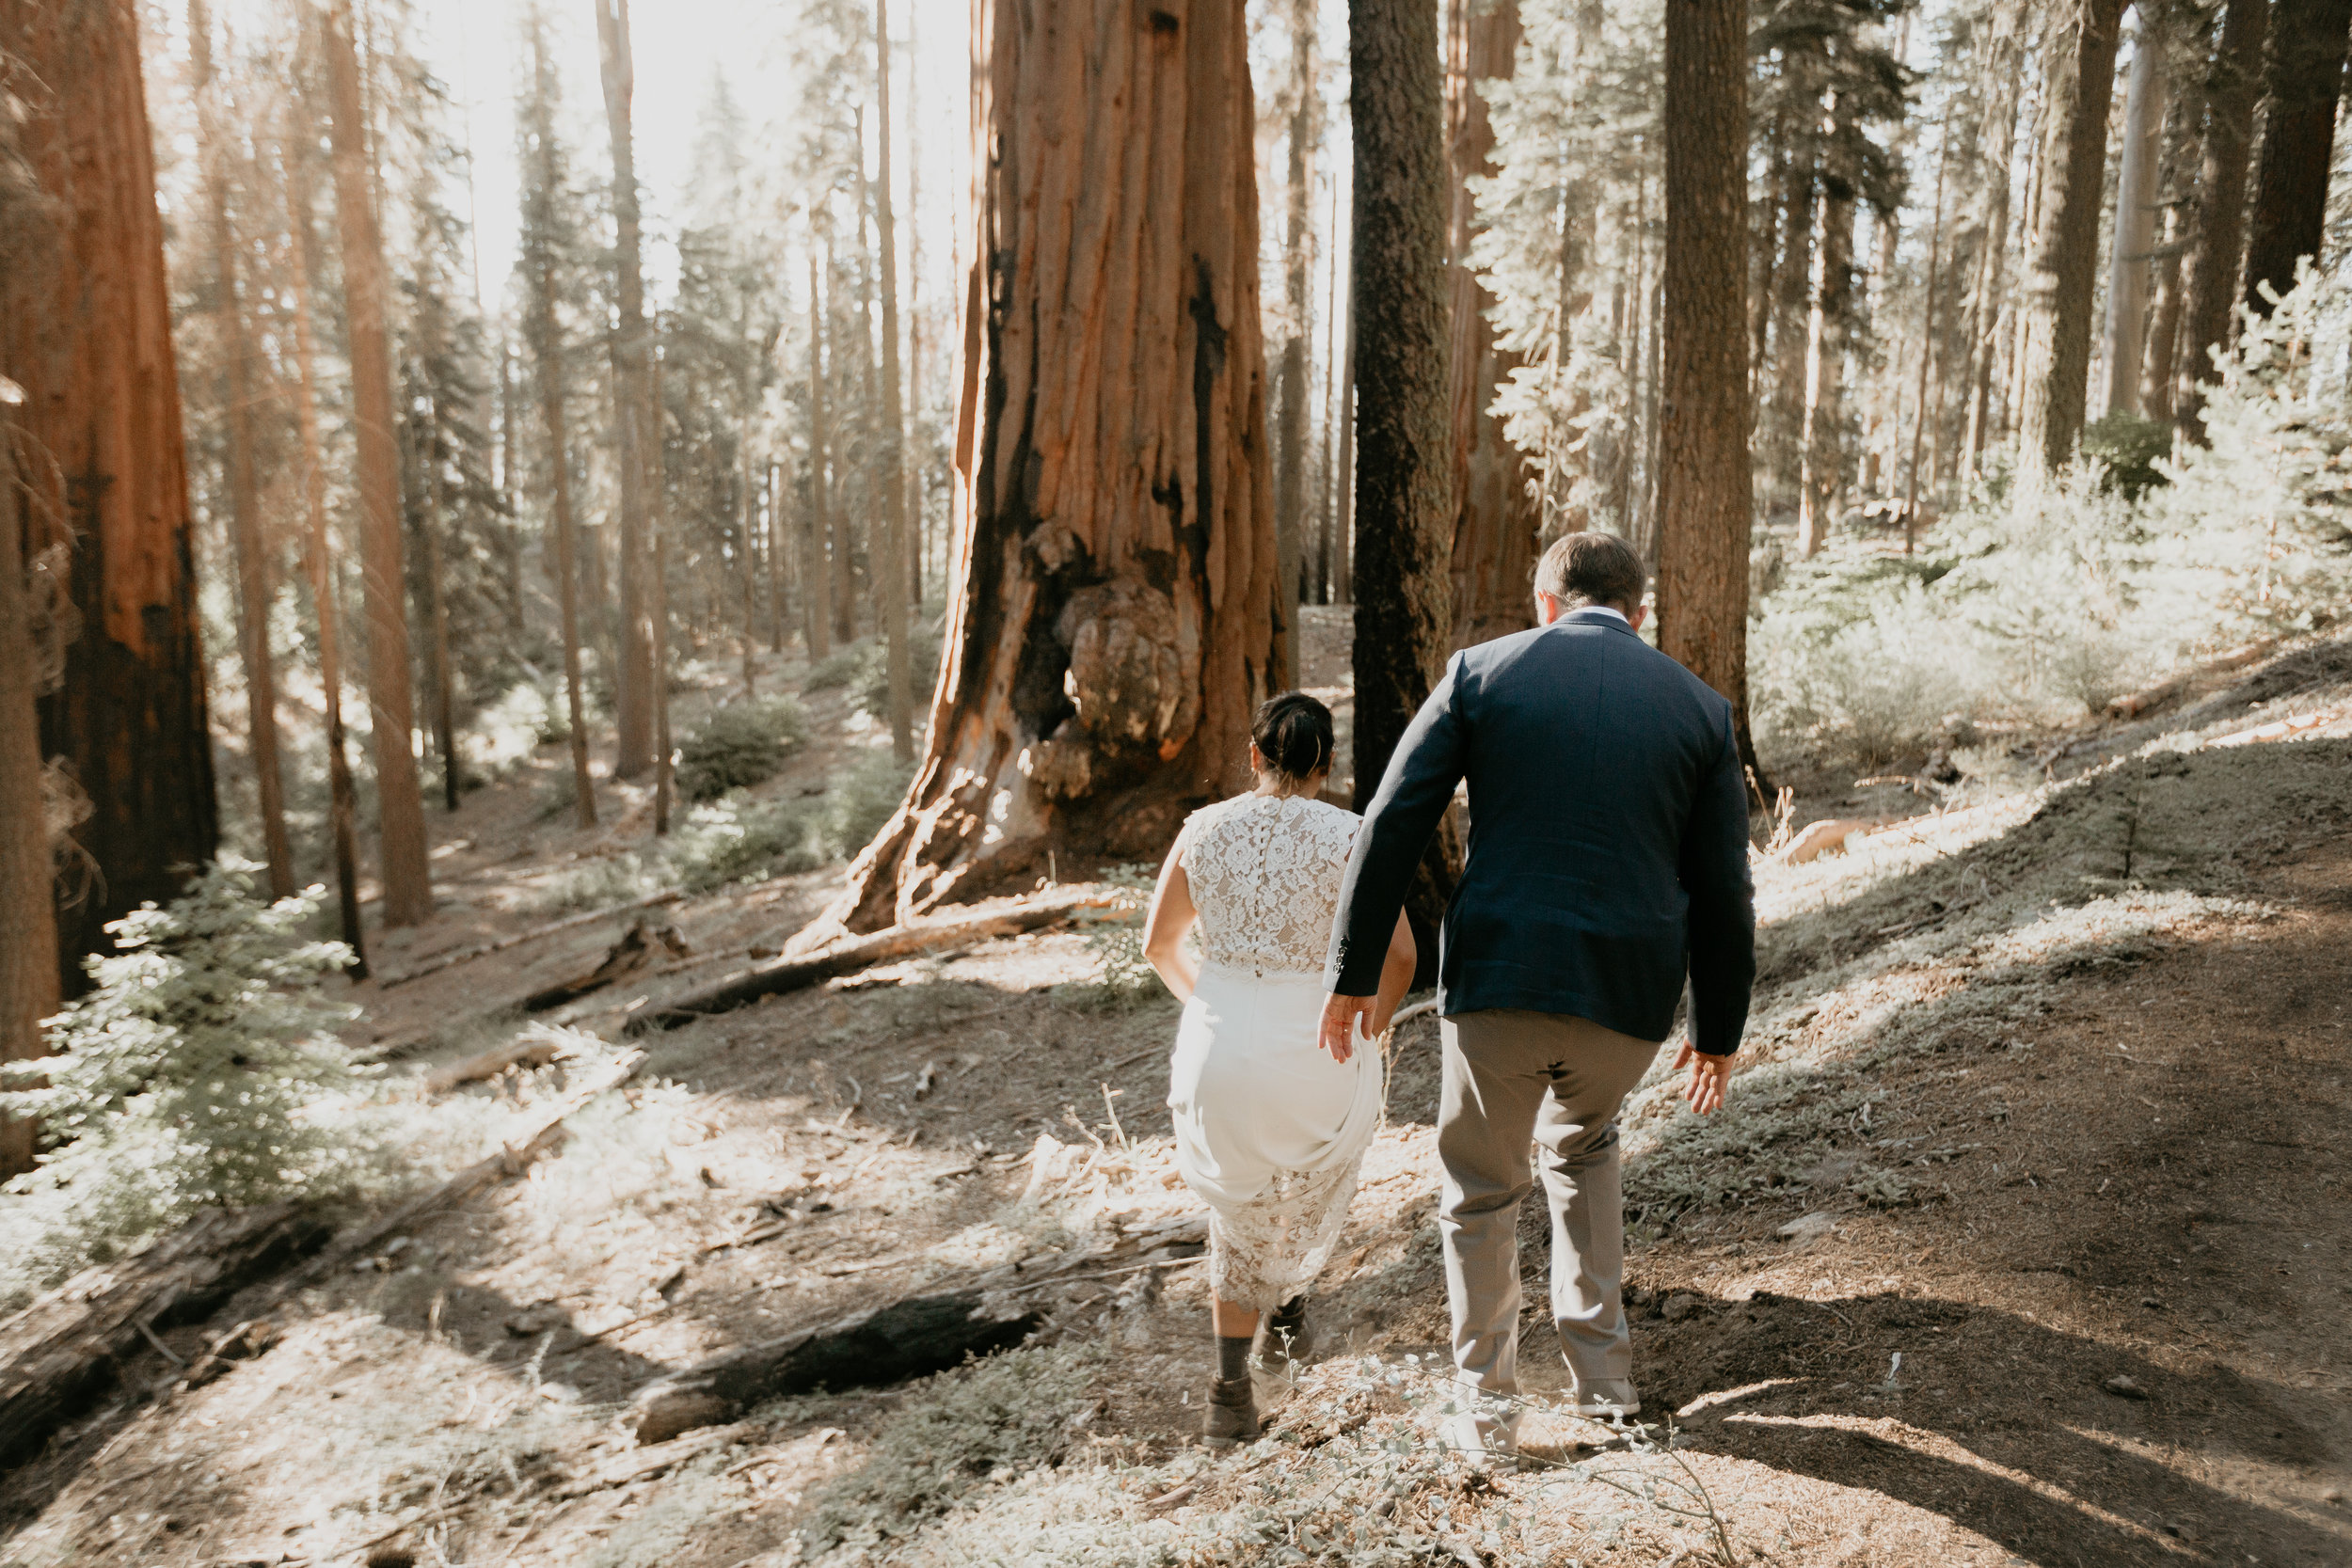 nicole-daacke-photography-sequoia-national-park-adventurous-elopement-sequoia-elopement-photographer-redwoods-california-intimate-wedding-photographer-8.jpg